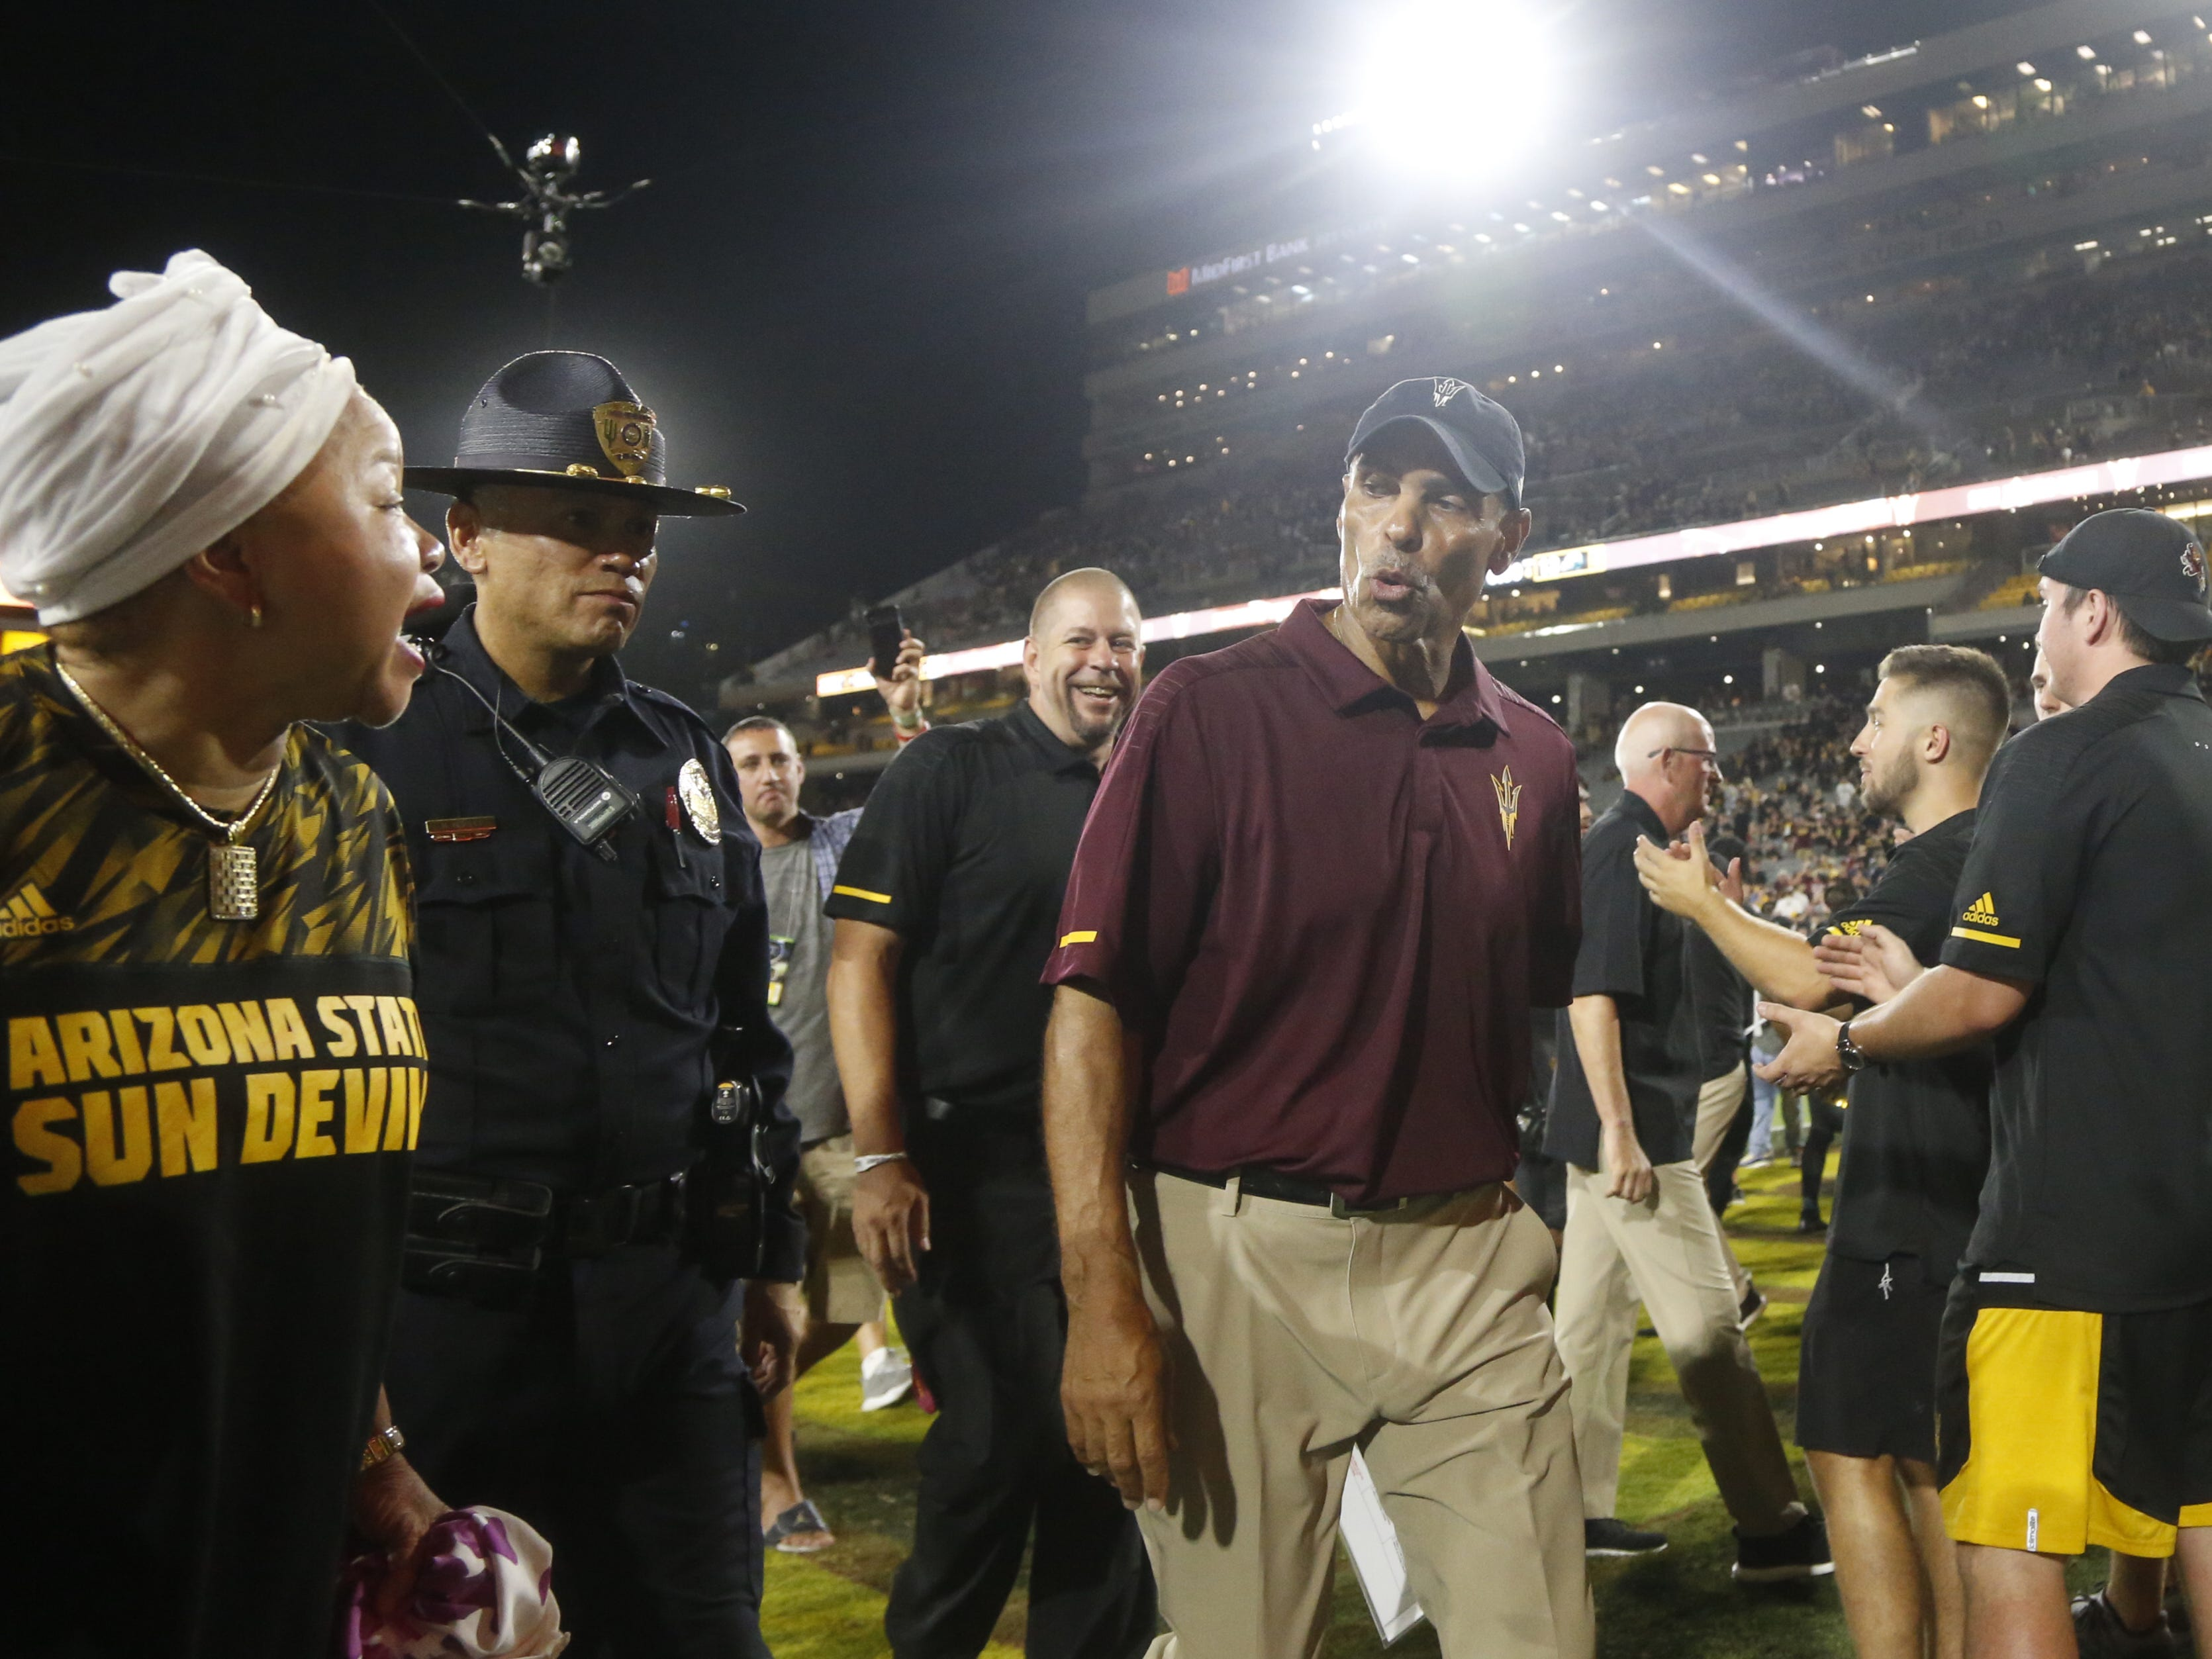 An ASU fan thanks Herm Edwards as he leaves the field after defeating Michigan State 16-13 at Sun Devil Stadium in Tempe, Ariz. on Sept. 8, 2018.